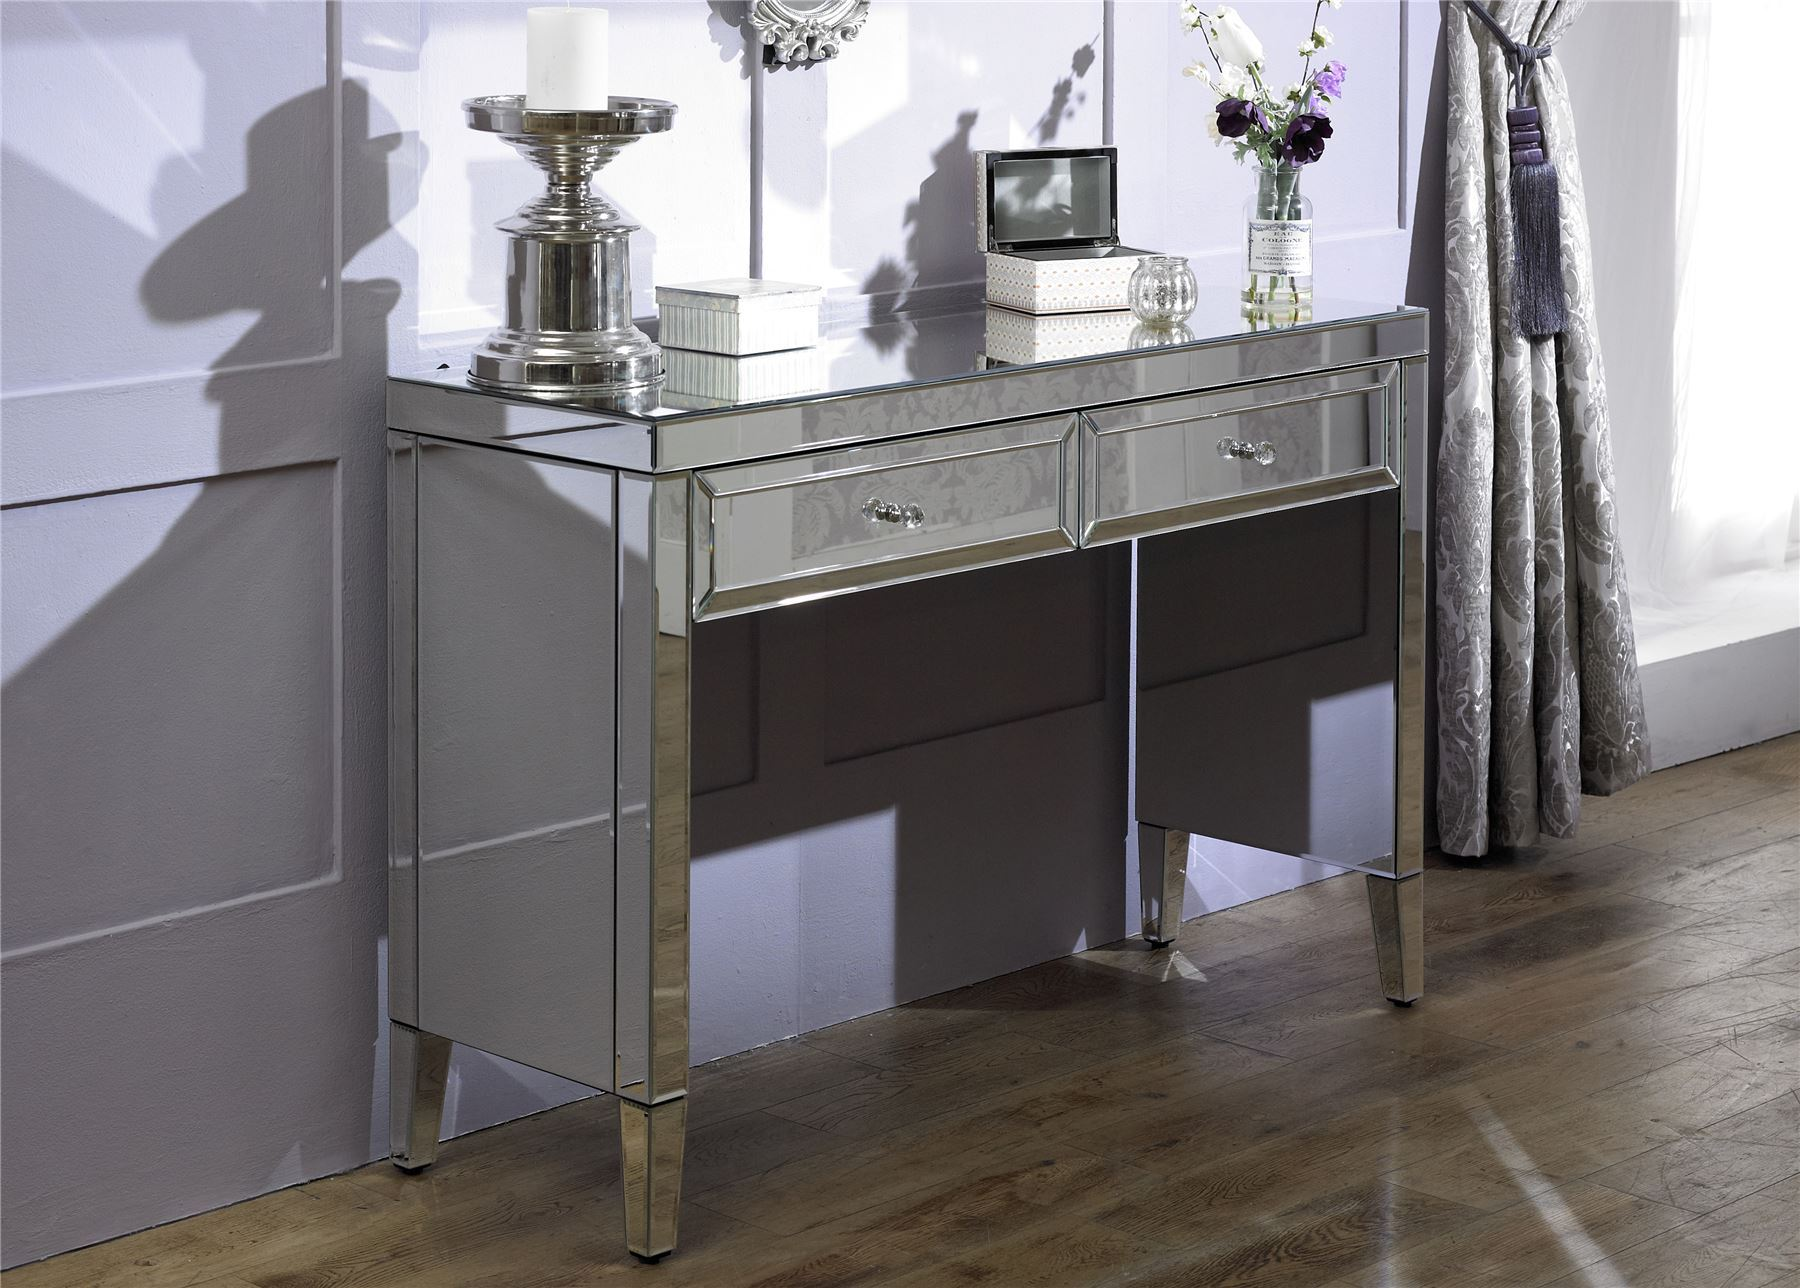 Birlea Valencia Mirrored 2 Drawer Bevelled Mirror Console Dressing Table